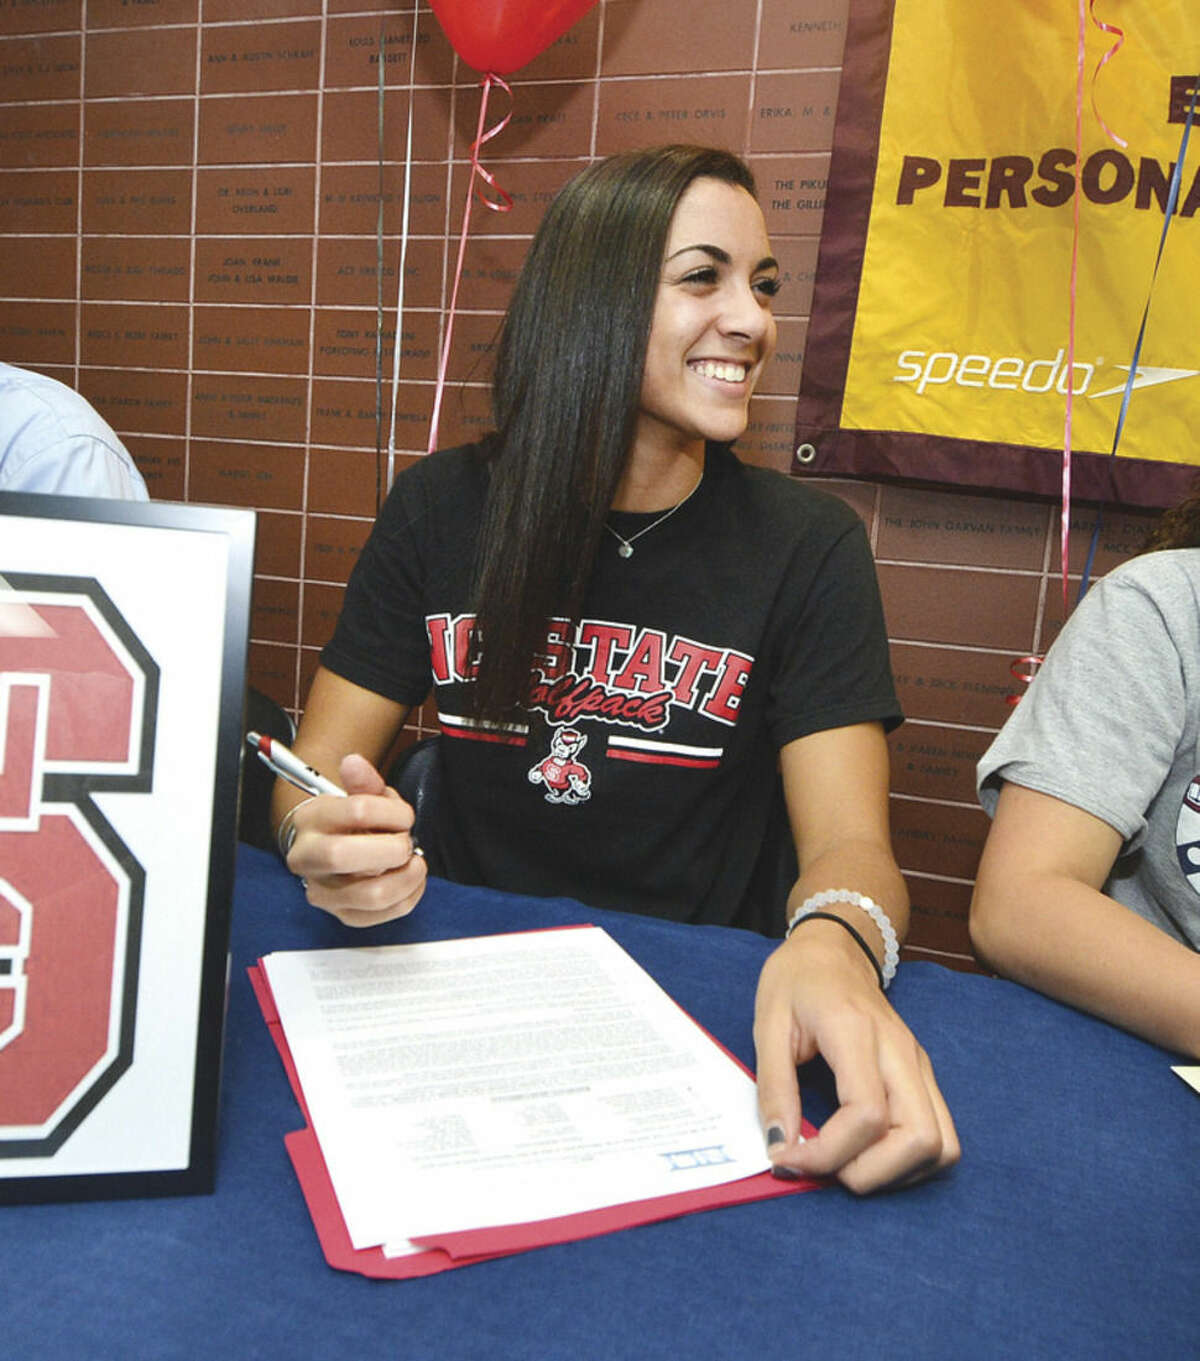 Hour photo/Alex von Kleydorff Ky-Lee Perry, a resident of Norwalk and senior at Brien McMahon High School, signs a letter of intent for swimming at North Carolina State. She is a member of the Wilton Wahoos swim team.